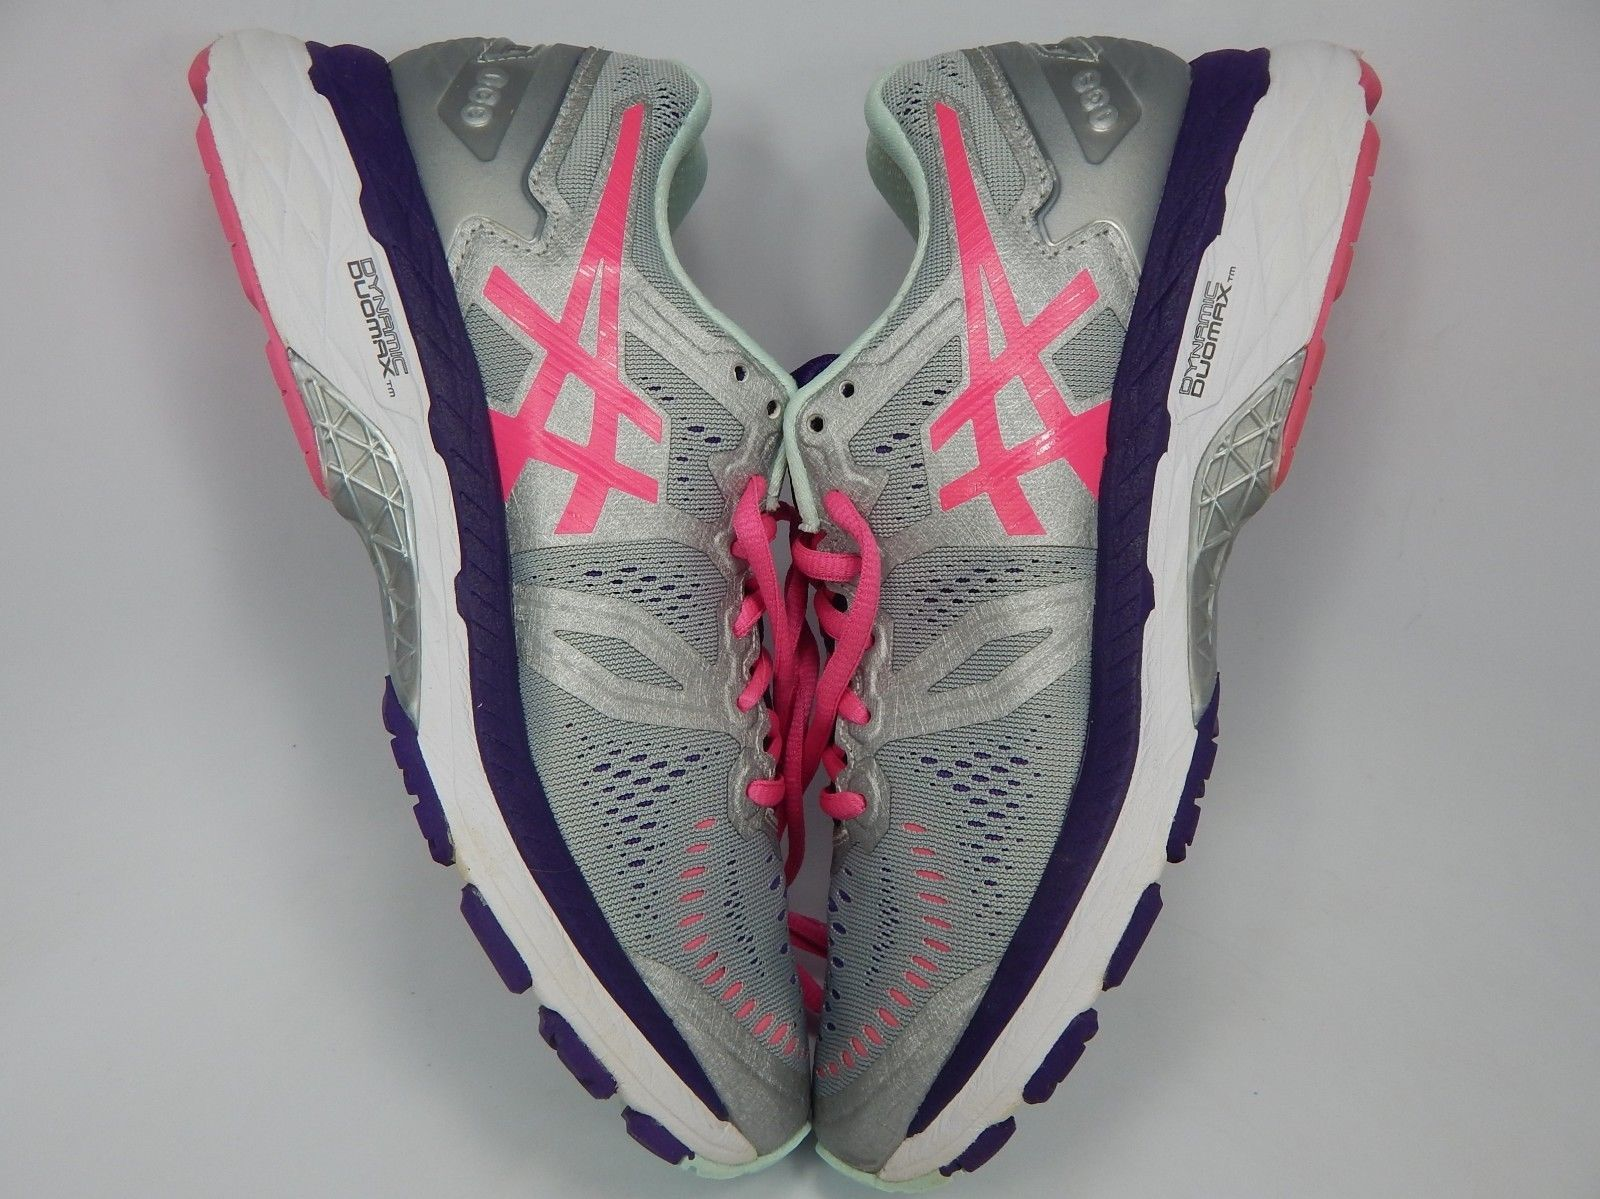 Asics Kayano 23 Size US 8 M (B) EU 39.5 Women's Running Shoes Silver Pink T696N